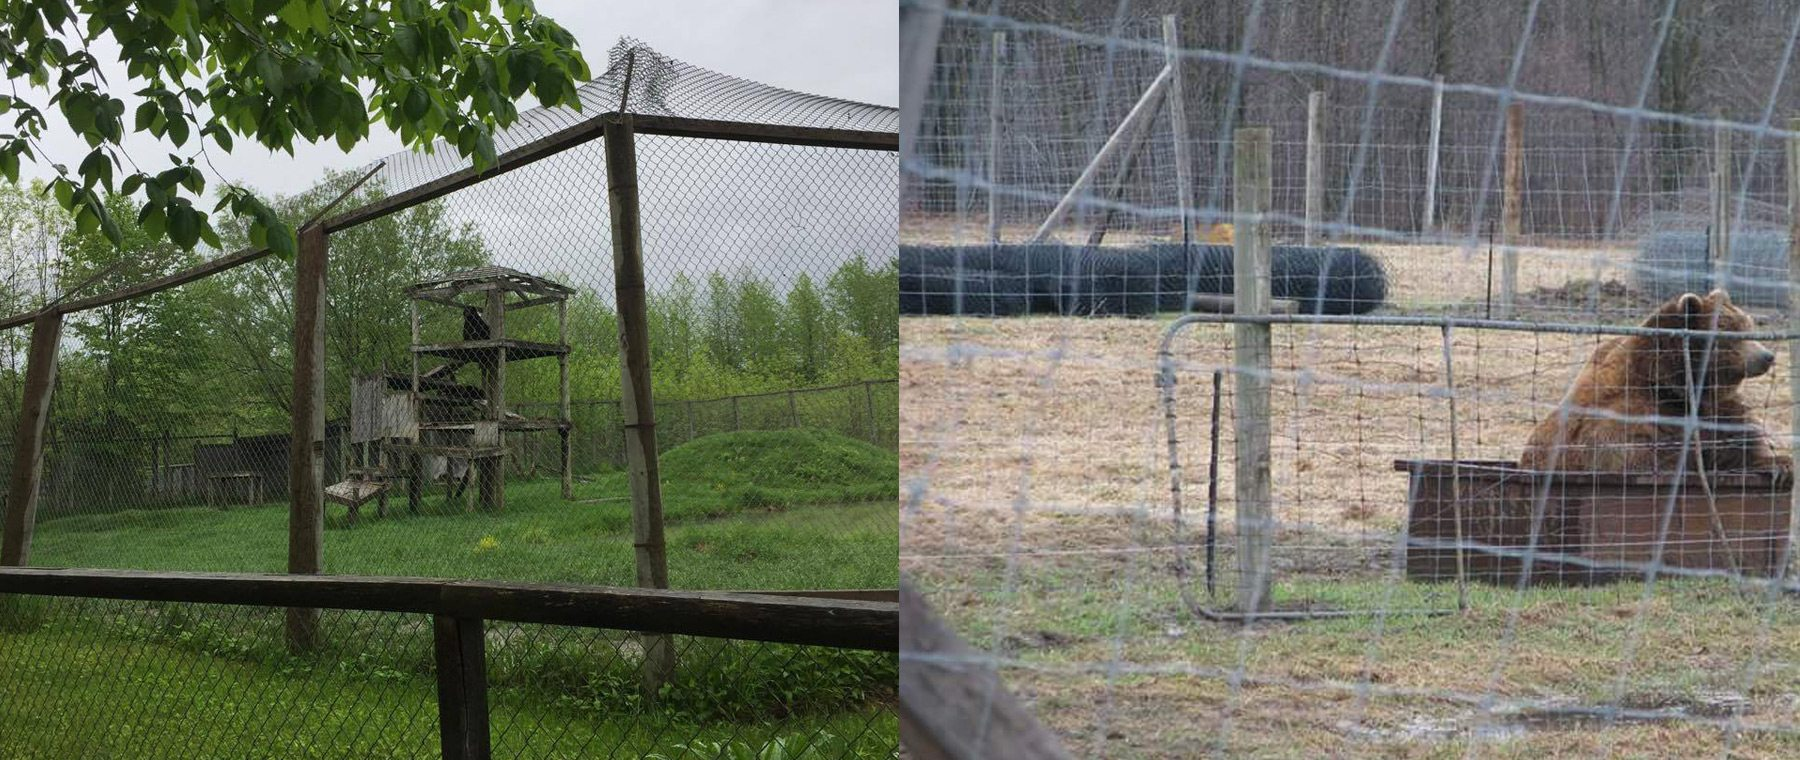 Different perspectives: Left, courtesy of Papanack co-owner Kerry Bayford. Right, courtesy of Michele Thorn of the Animal Defense League of Ottawa